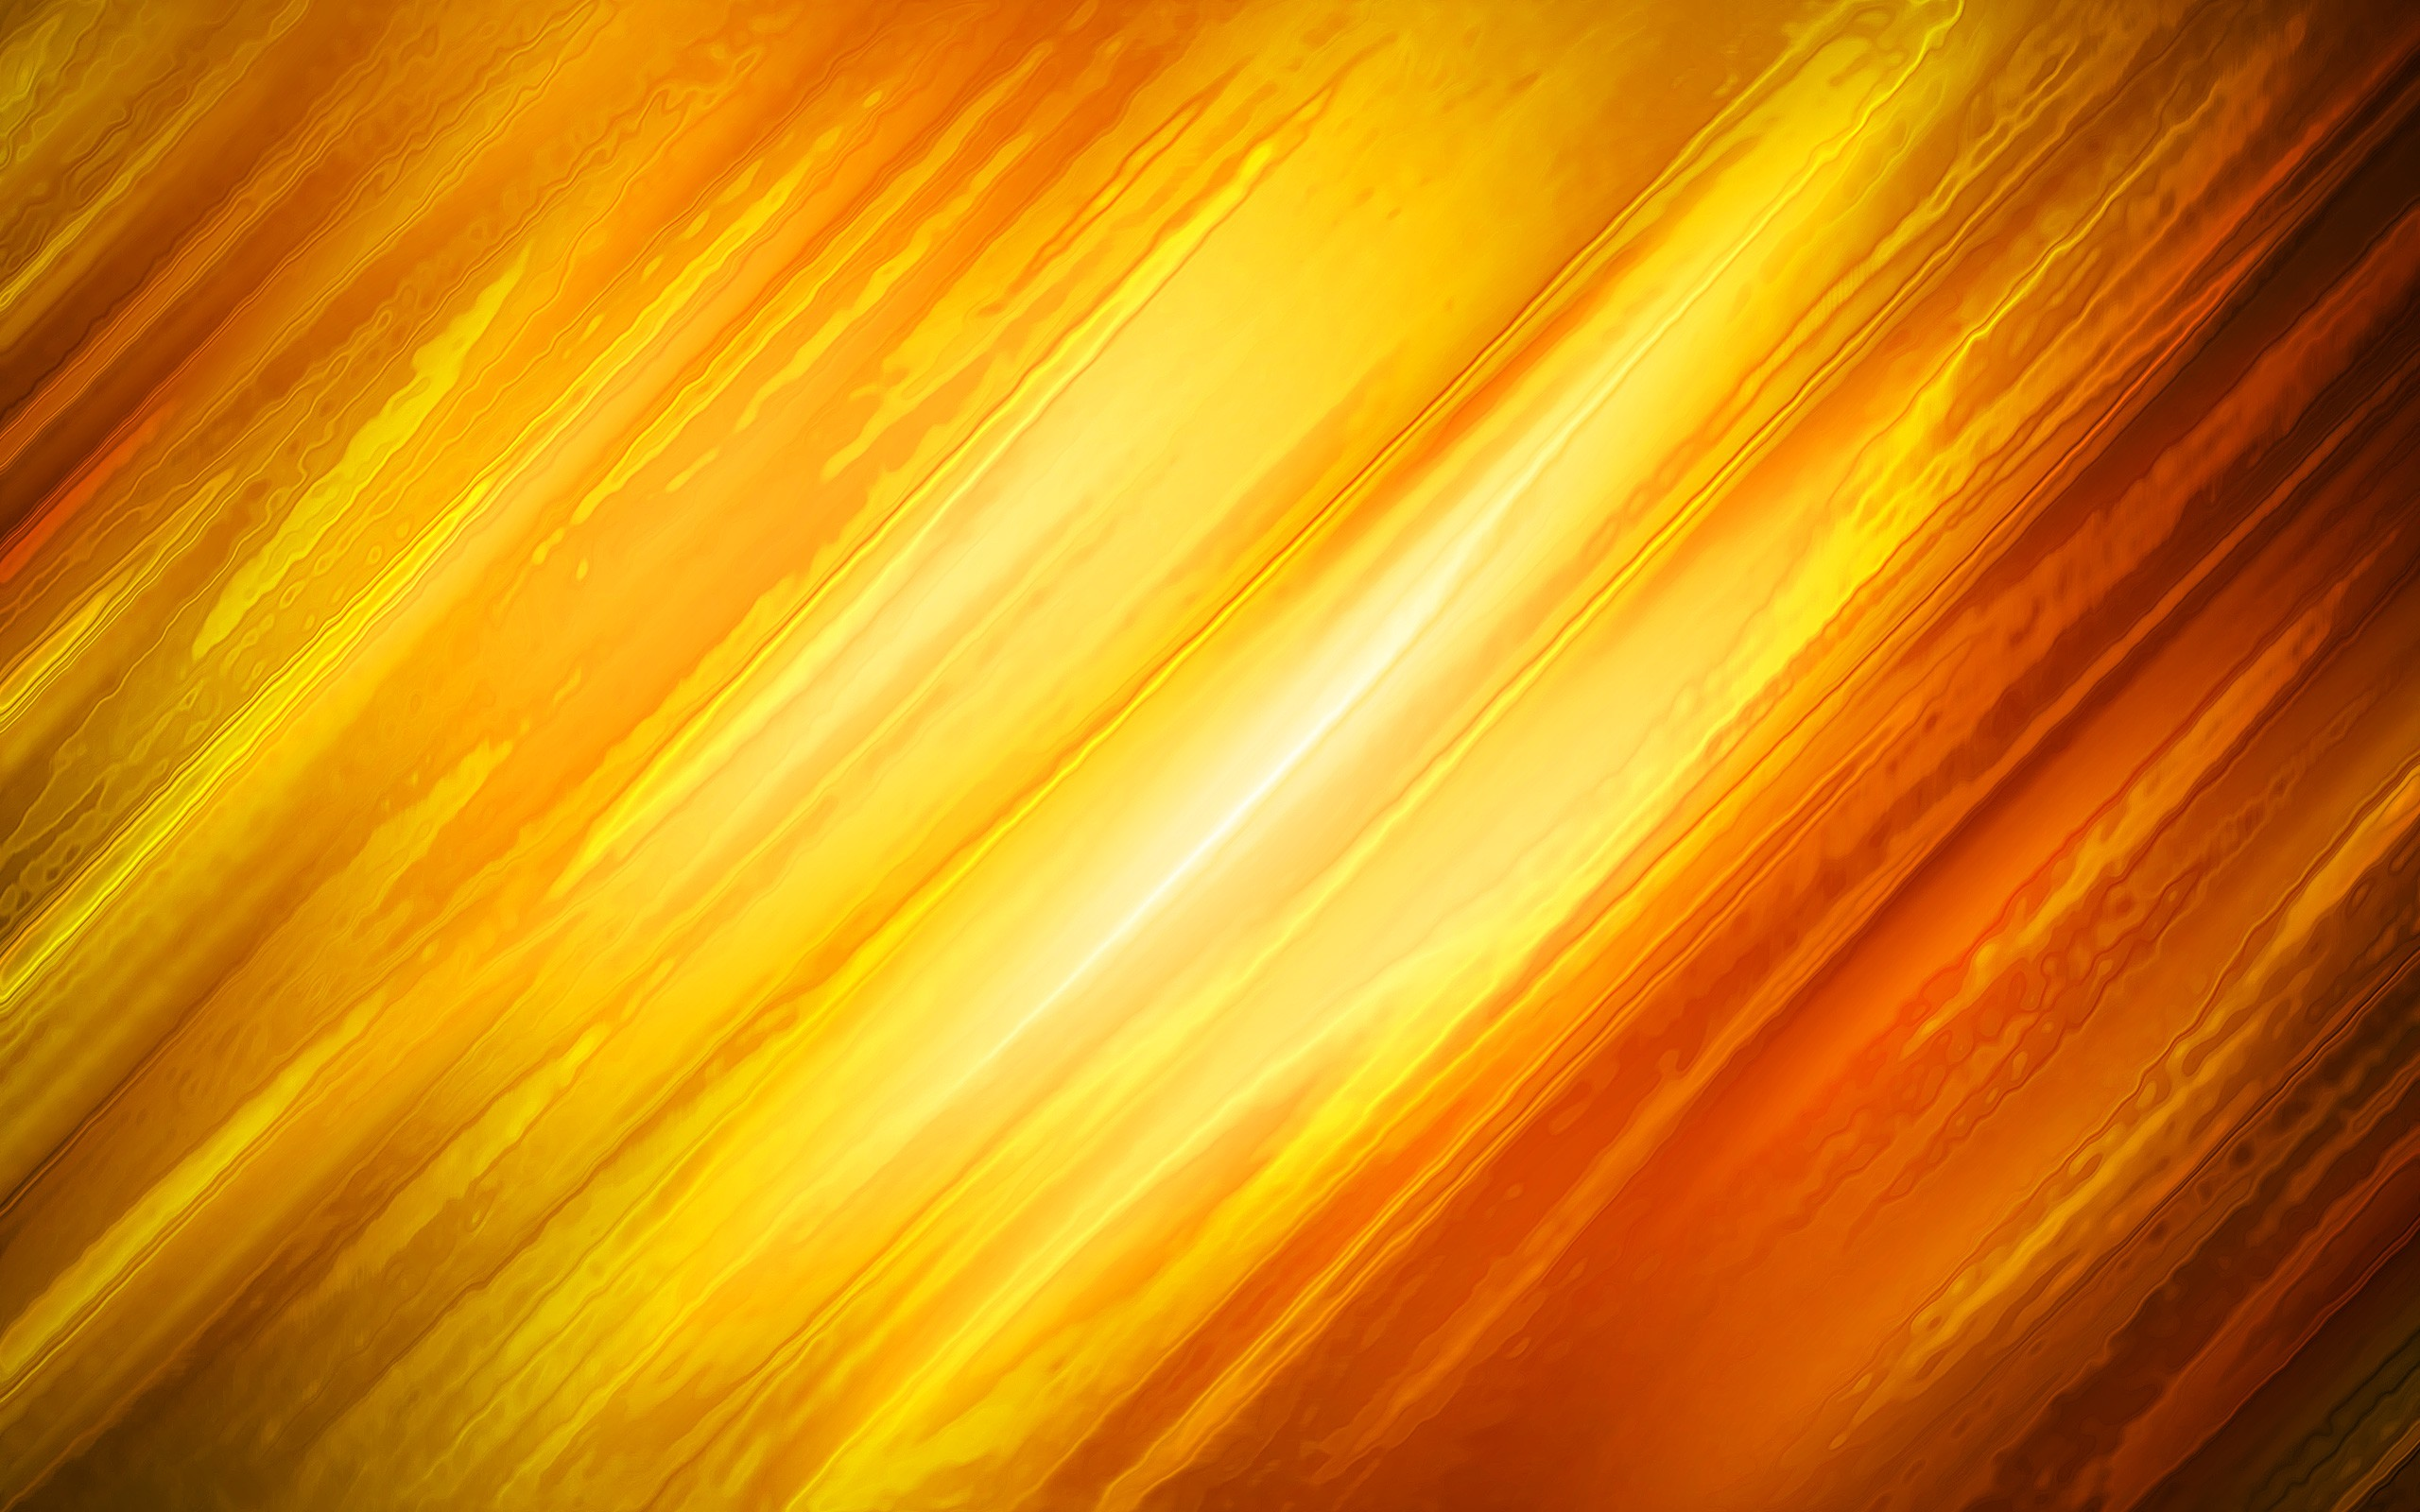 2560x1600 abstract yellow and orange background desktop pc